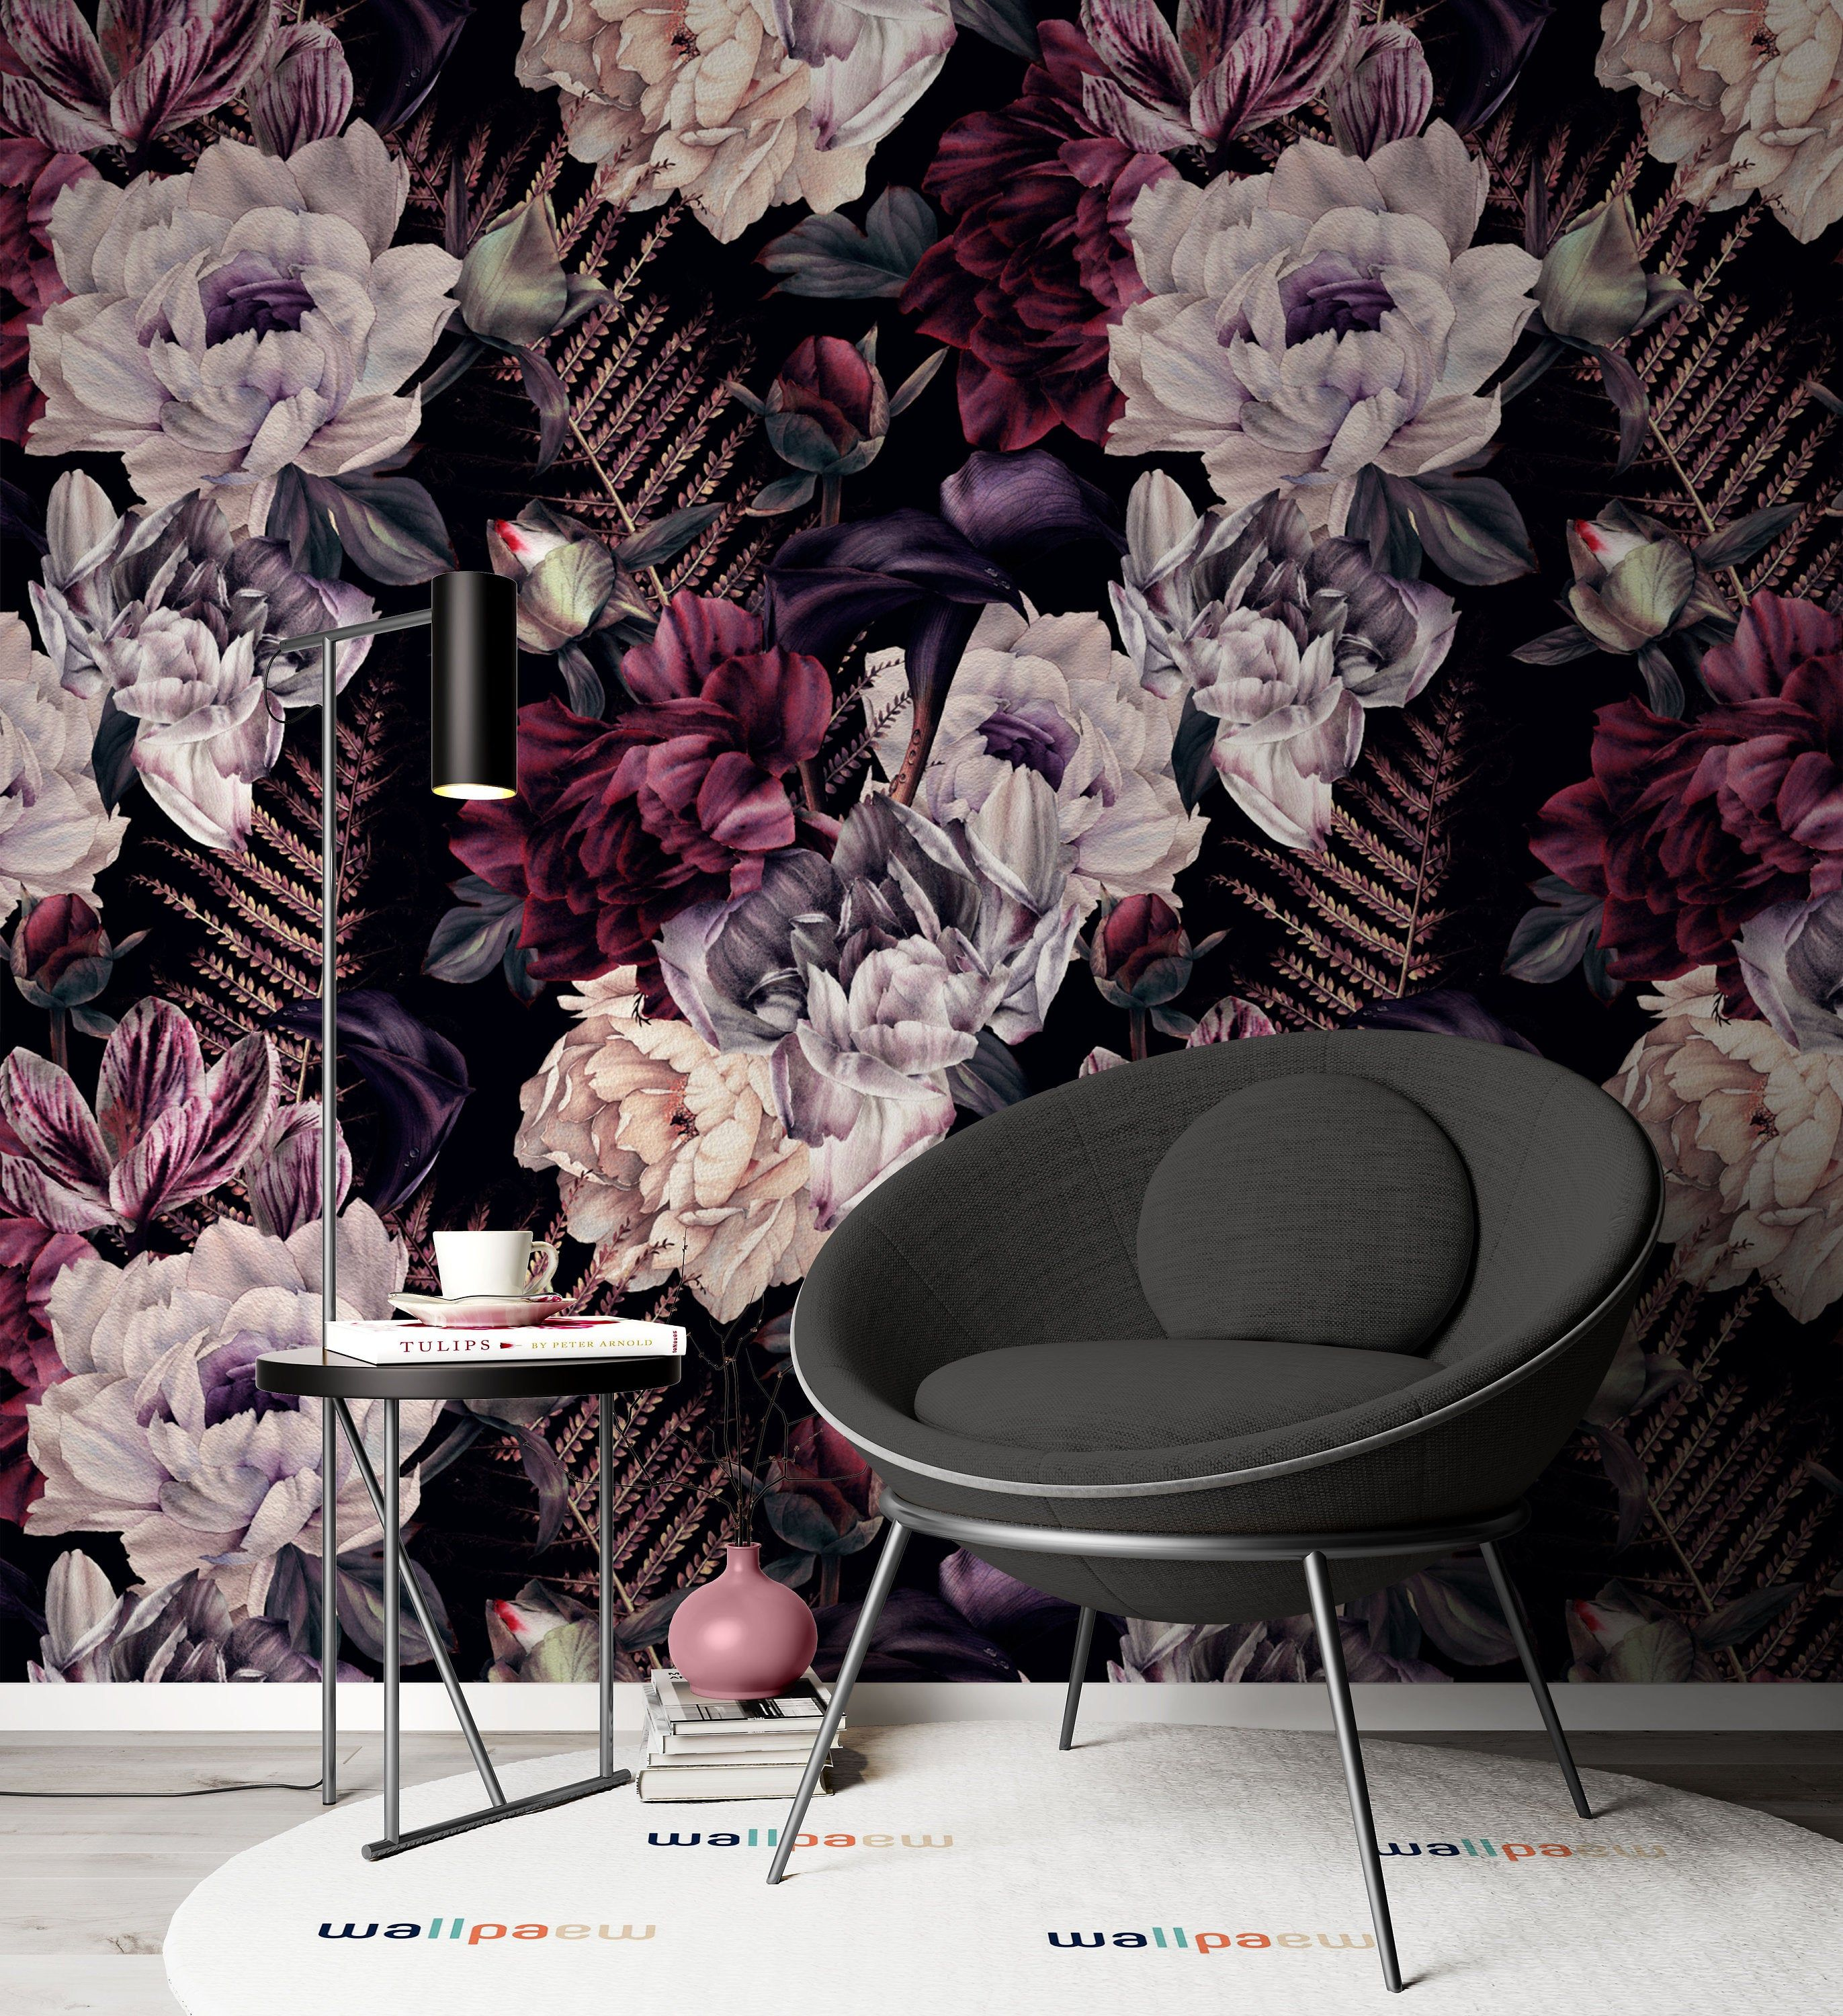 Colorful Roses And Leaves Dark Background Flowers Modern Etsy In 2020 Modern Floral Wallpaper Floral Wallpaper Modern Floral